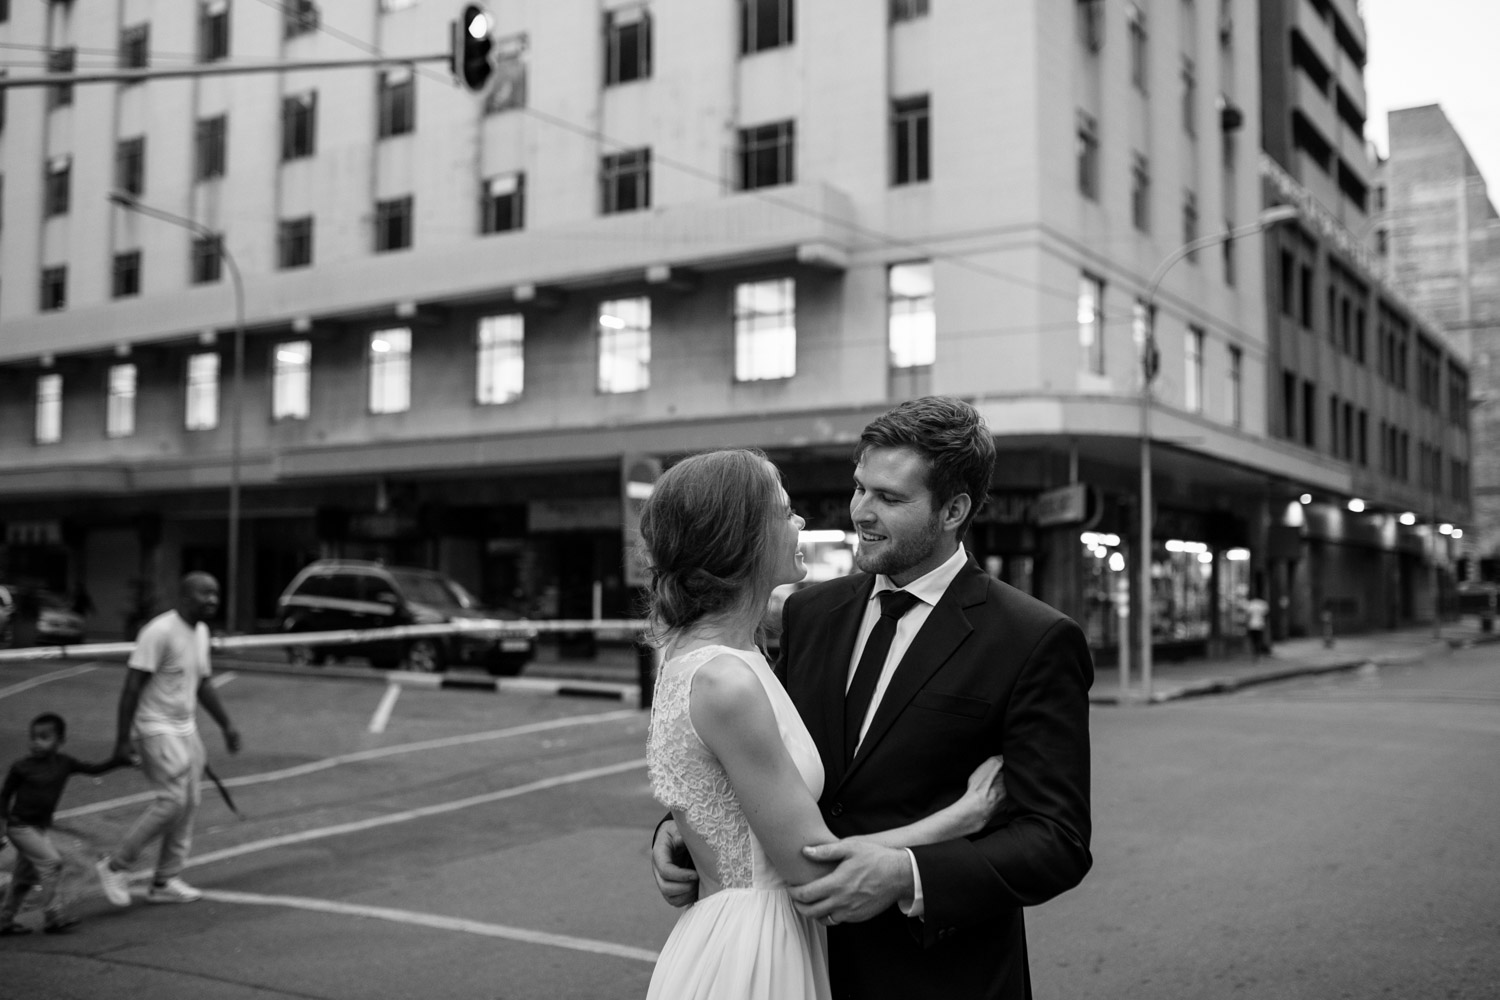 Bride Holds Groom In Vancouver City As Pedestrians Walk Past